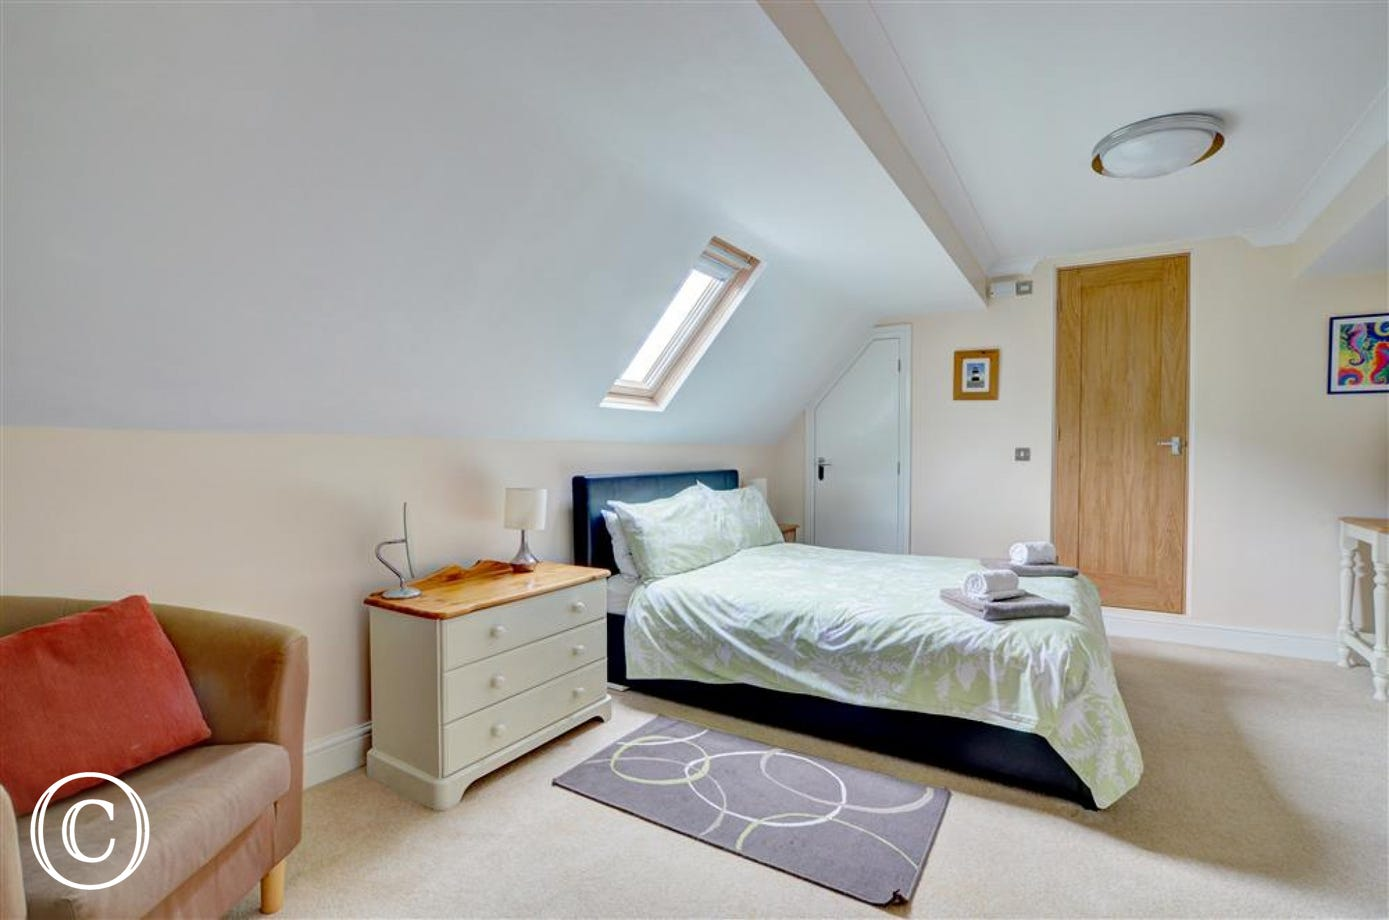 Master bedroom which is spacious and has it's own ensuite bathroom